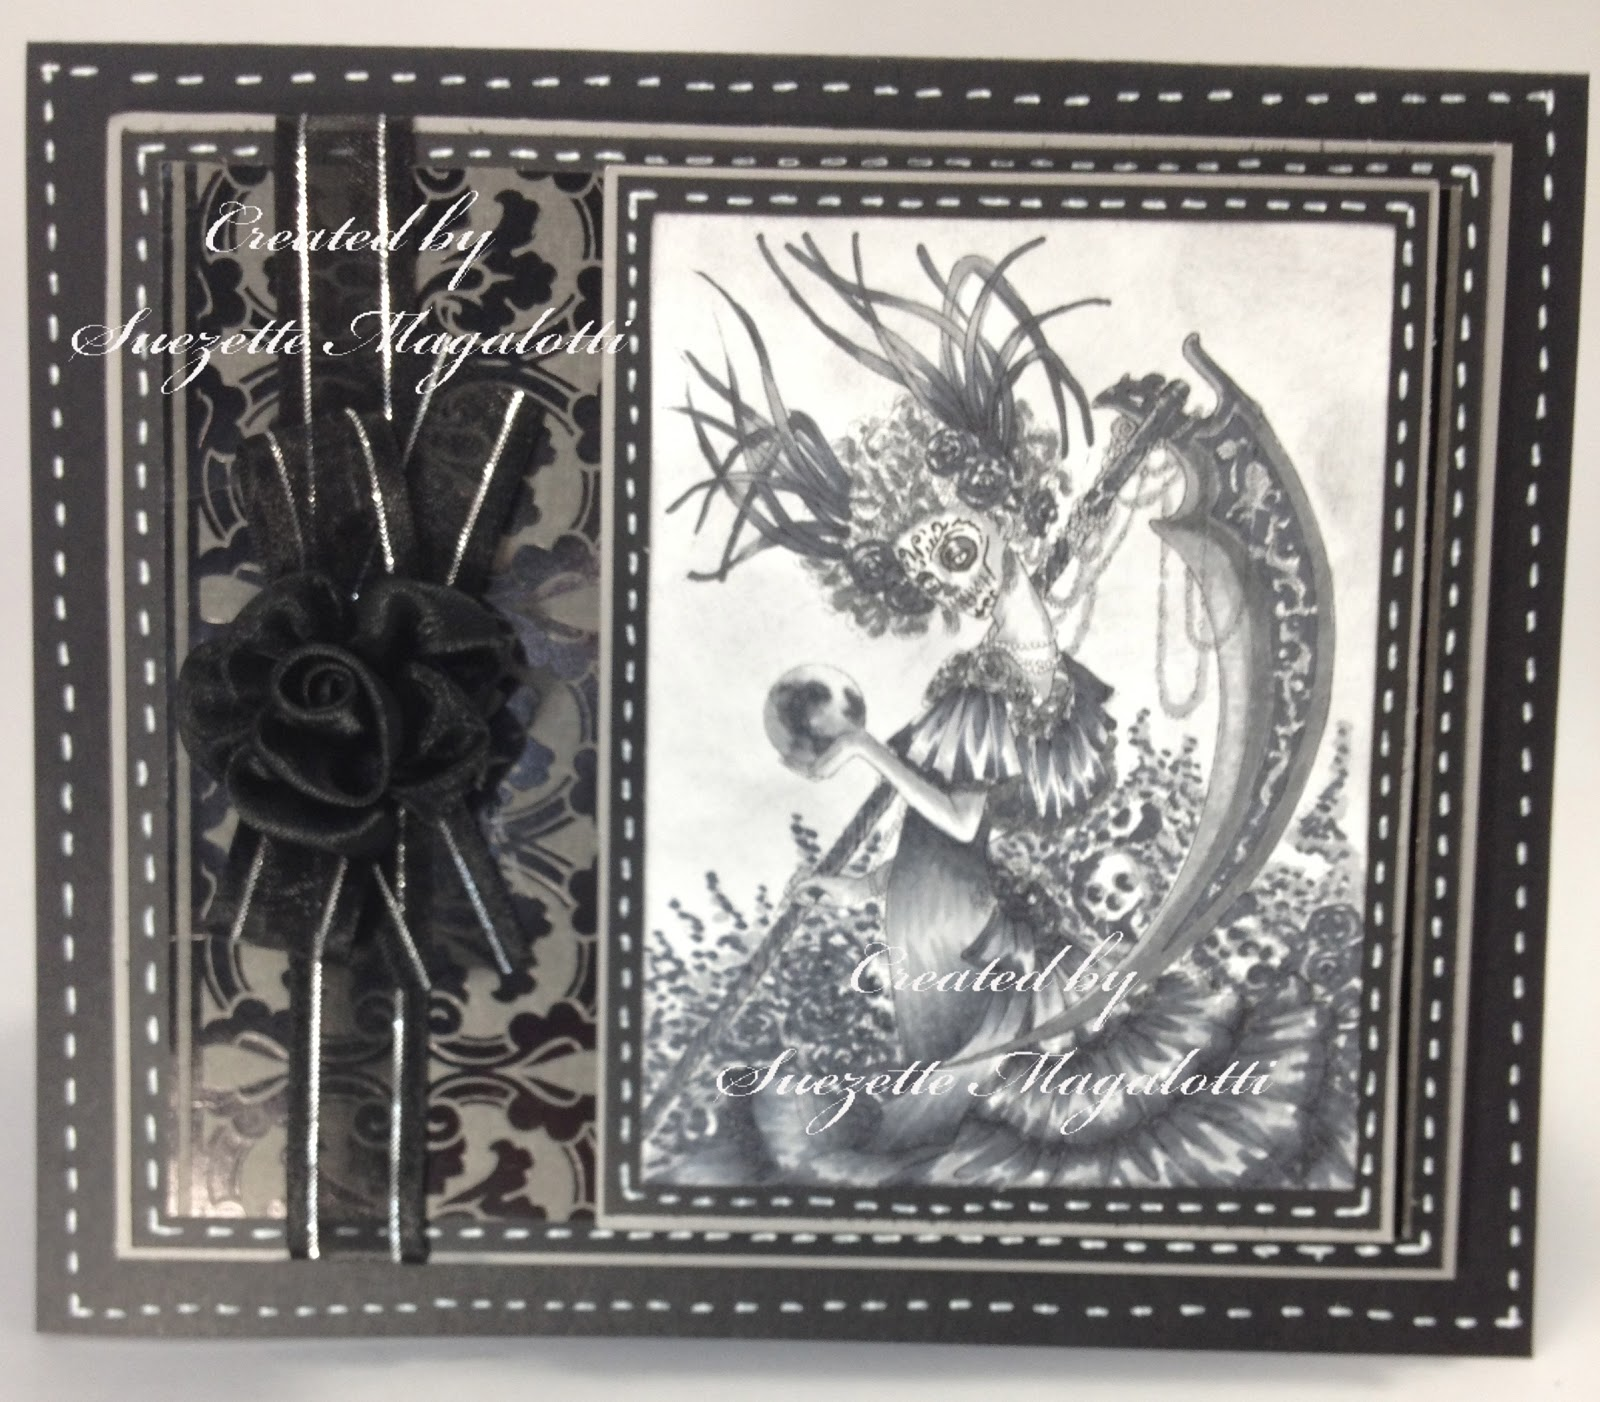 Suezette 39 s scrapbooking creations santa muerte the 39 black 39 challenge - Santa muerte signification ...